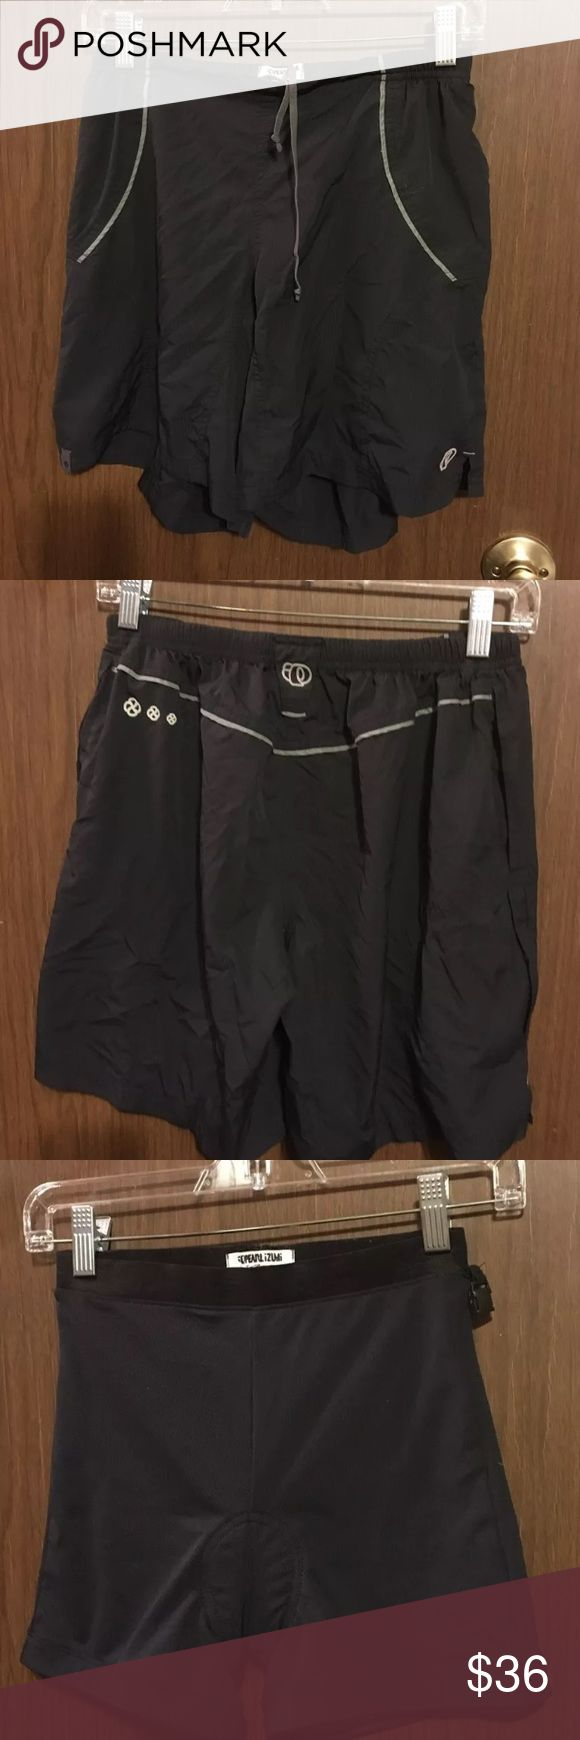 Pearl Izumi hiking cycling shorts Small Quick dry mountain biking shorts with separate interior padded compression shorts.  They attach with a clip on each side.  Size is ladies small  Compression shorts were never worn.  Nylon shorts were worn very little. I graduated to a medium pretty fast.   Authentic Pearl Izumi.  Great set. Pearl Izumi Shorts Cargos